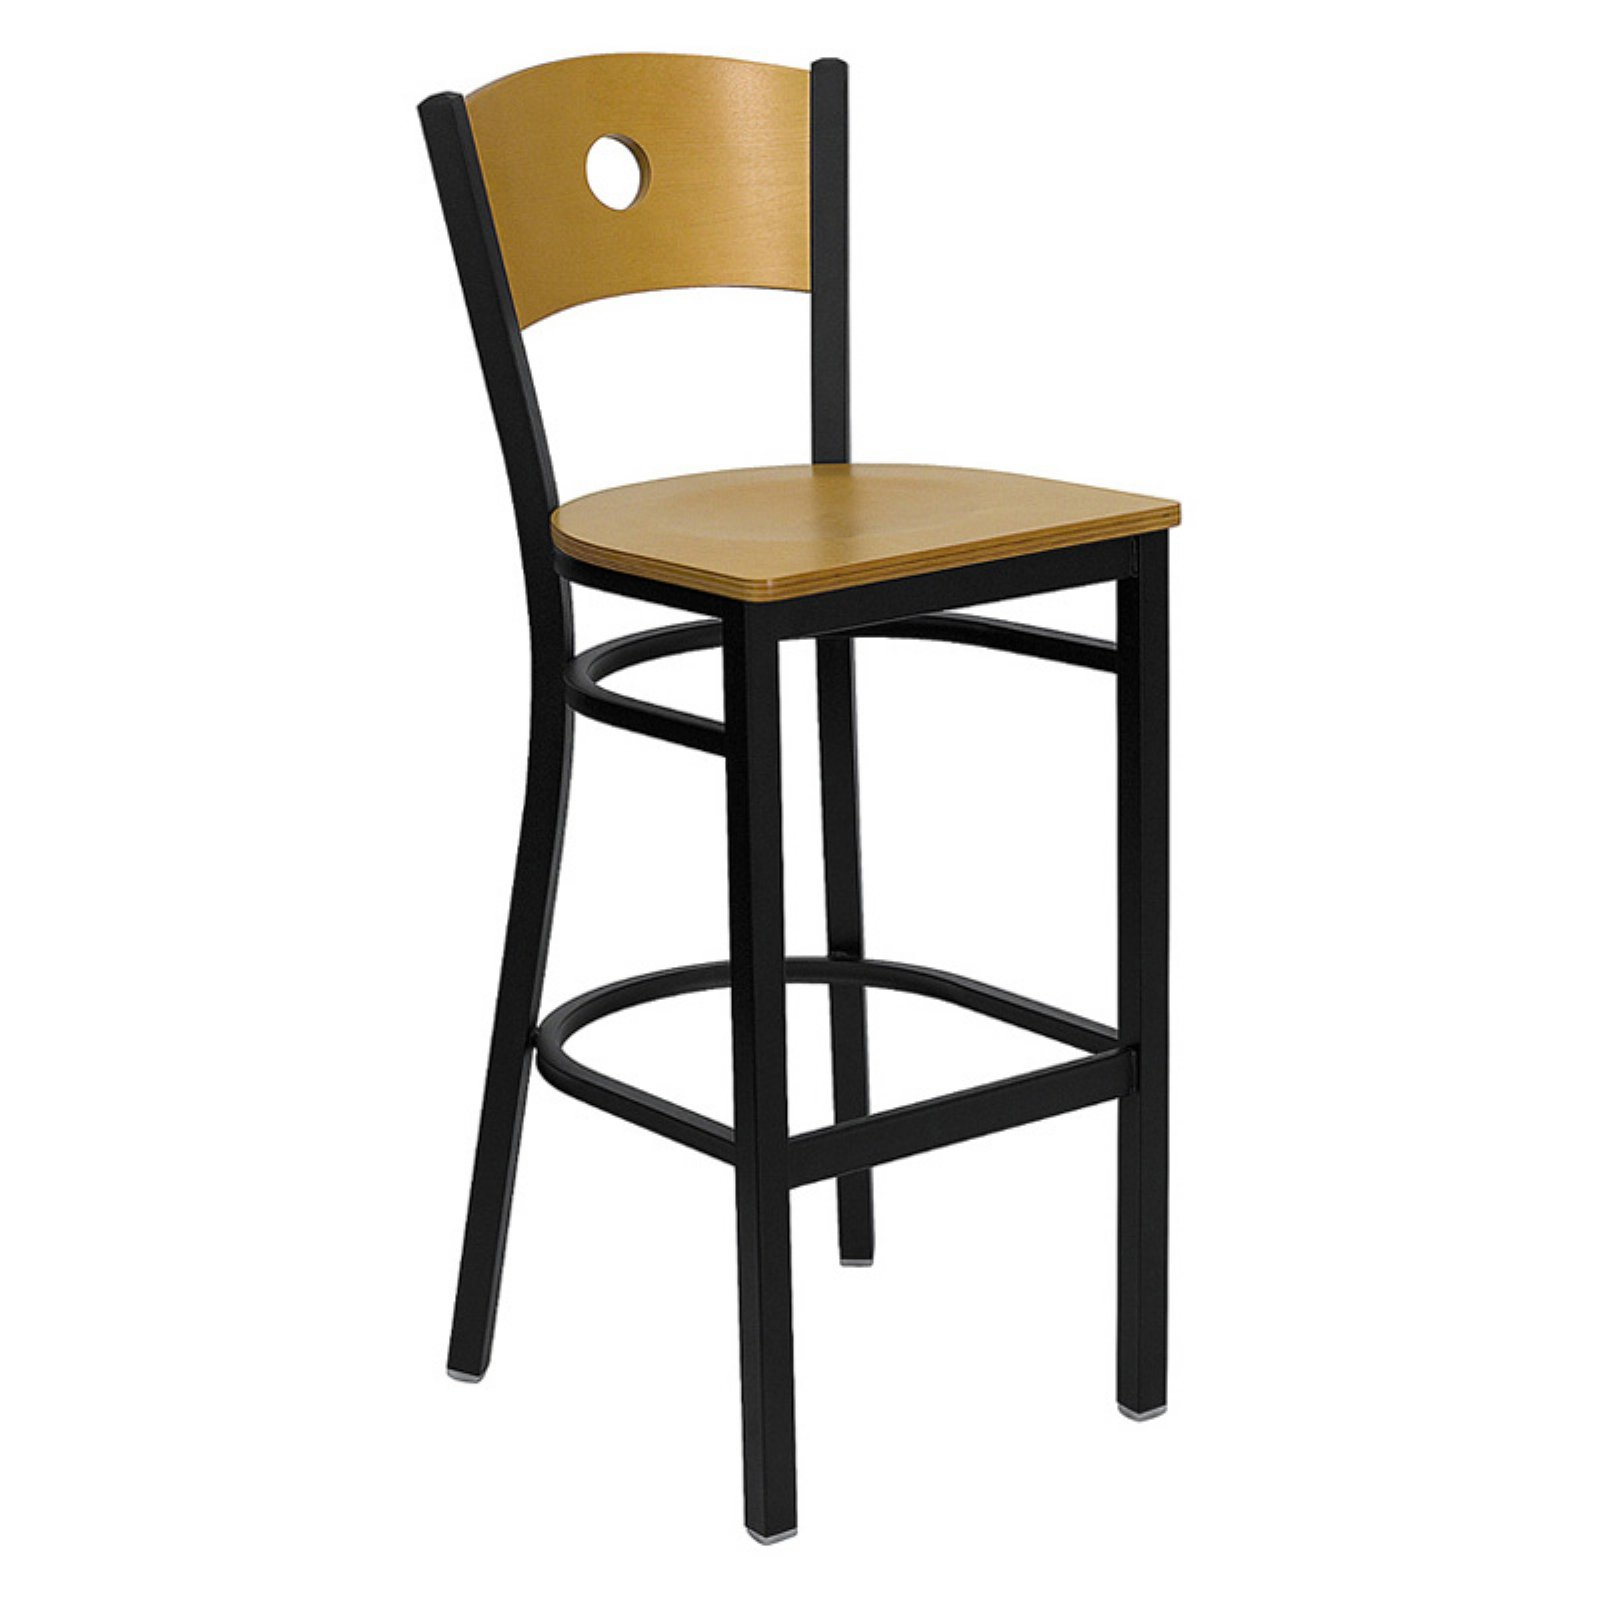 "Metal Circle Back Bar Stool 30"", Black and Natural"